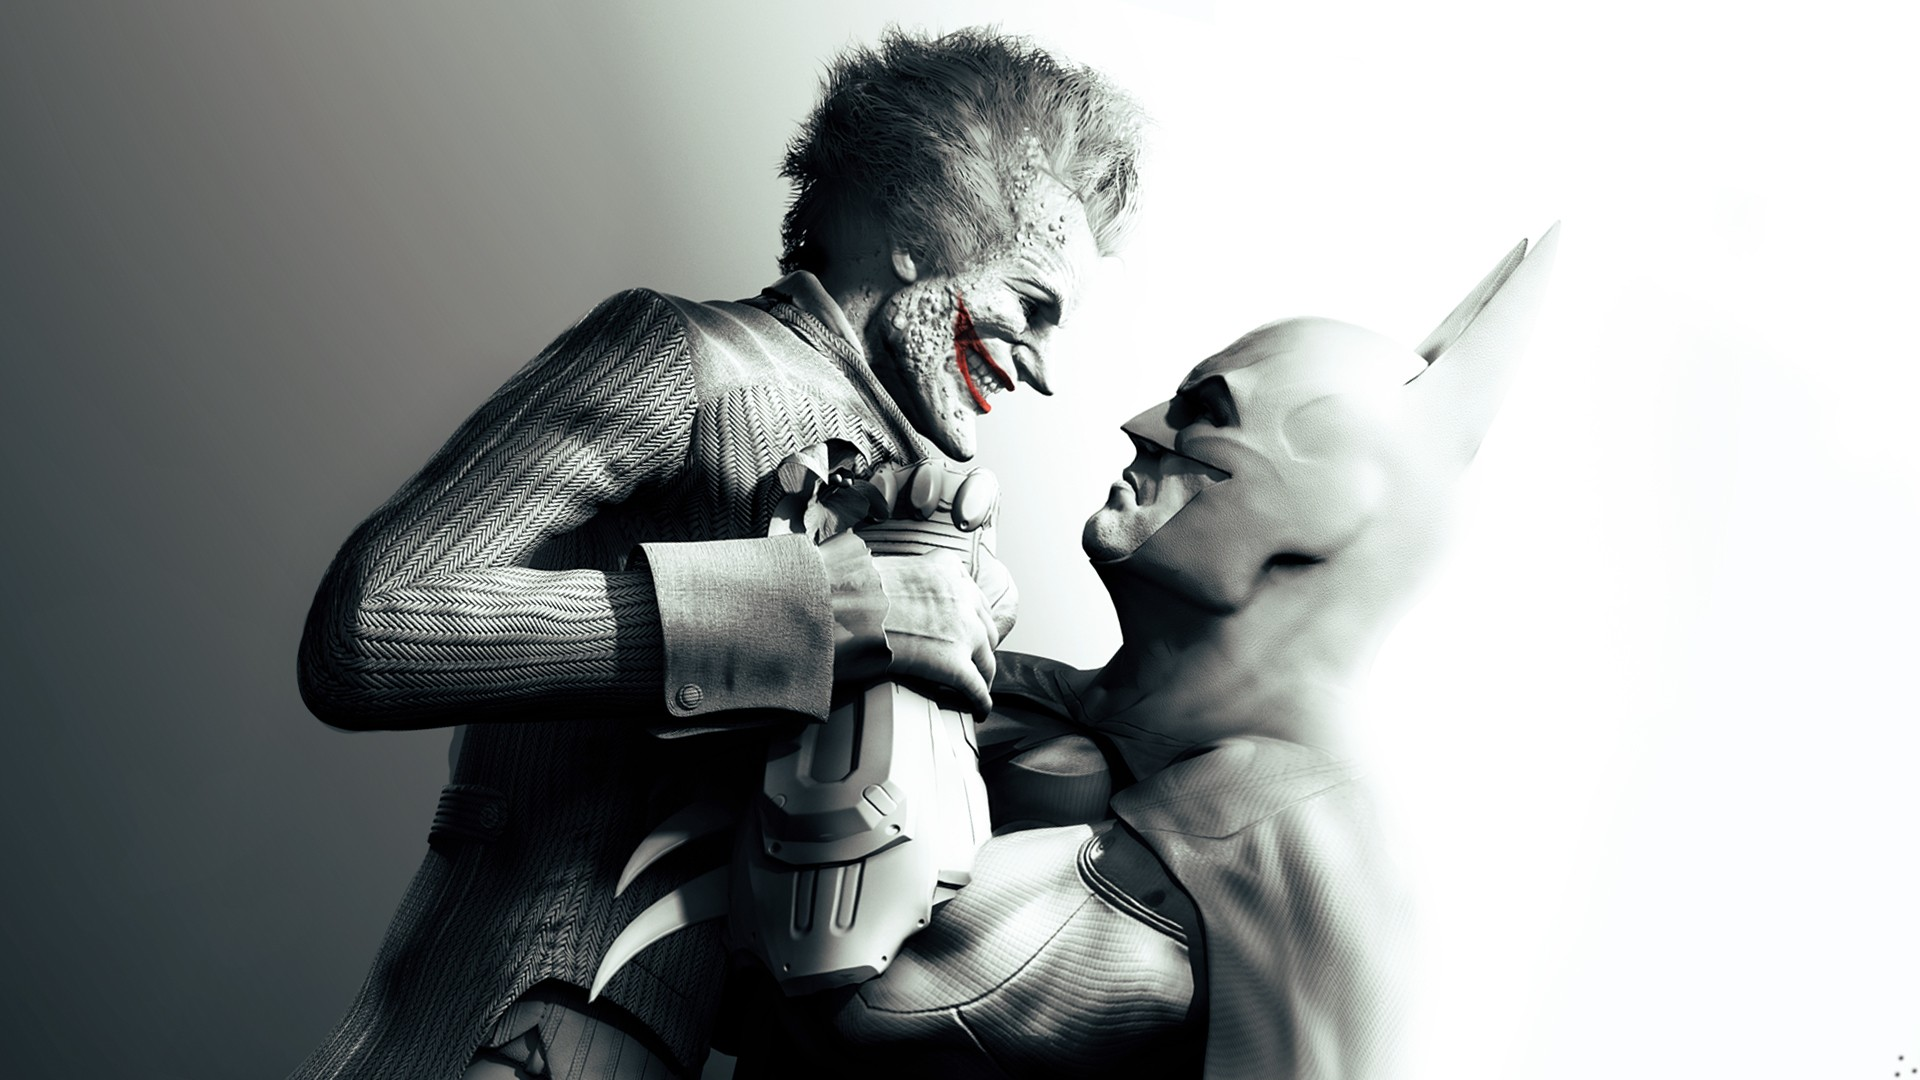 Batman Vs Joker Wallpaper